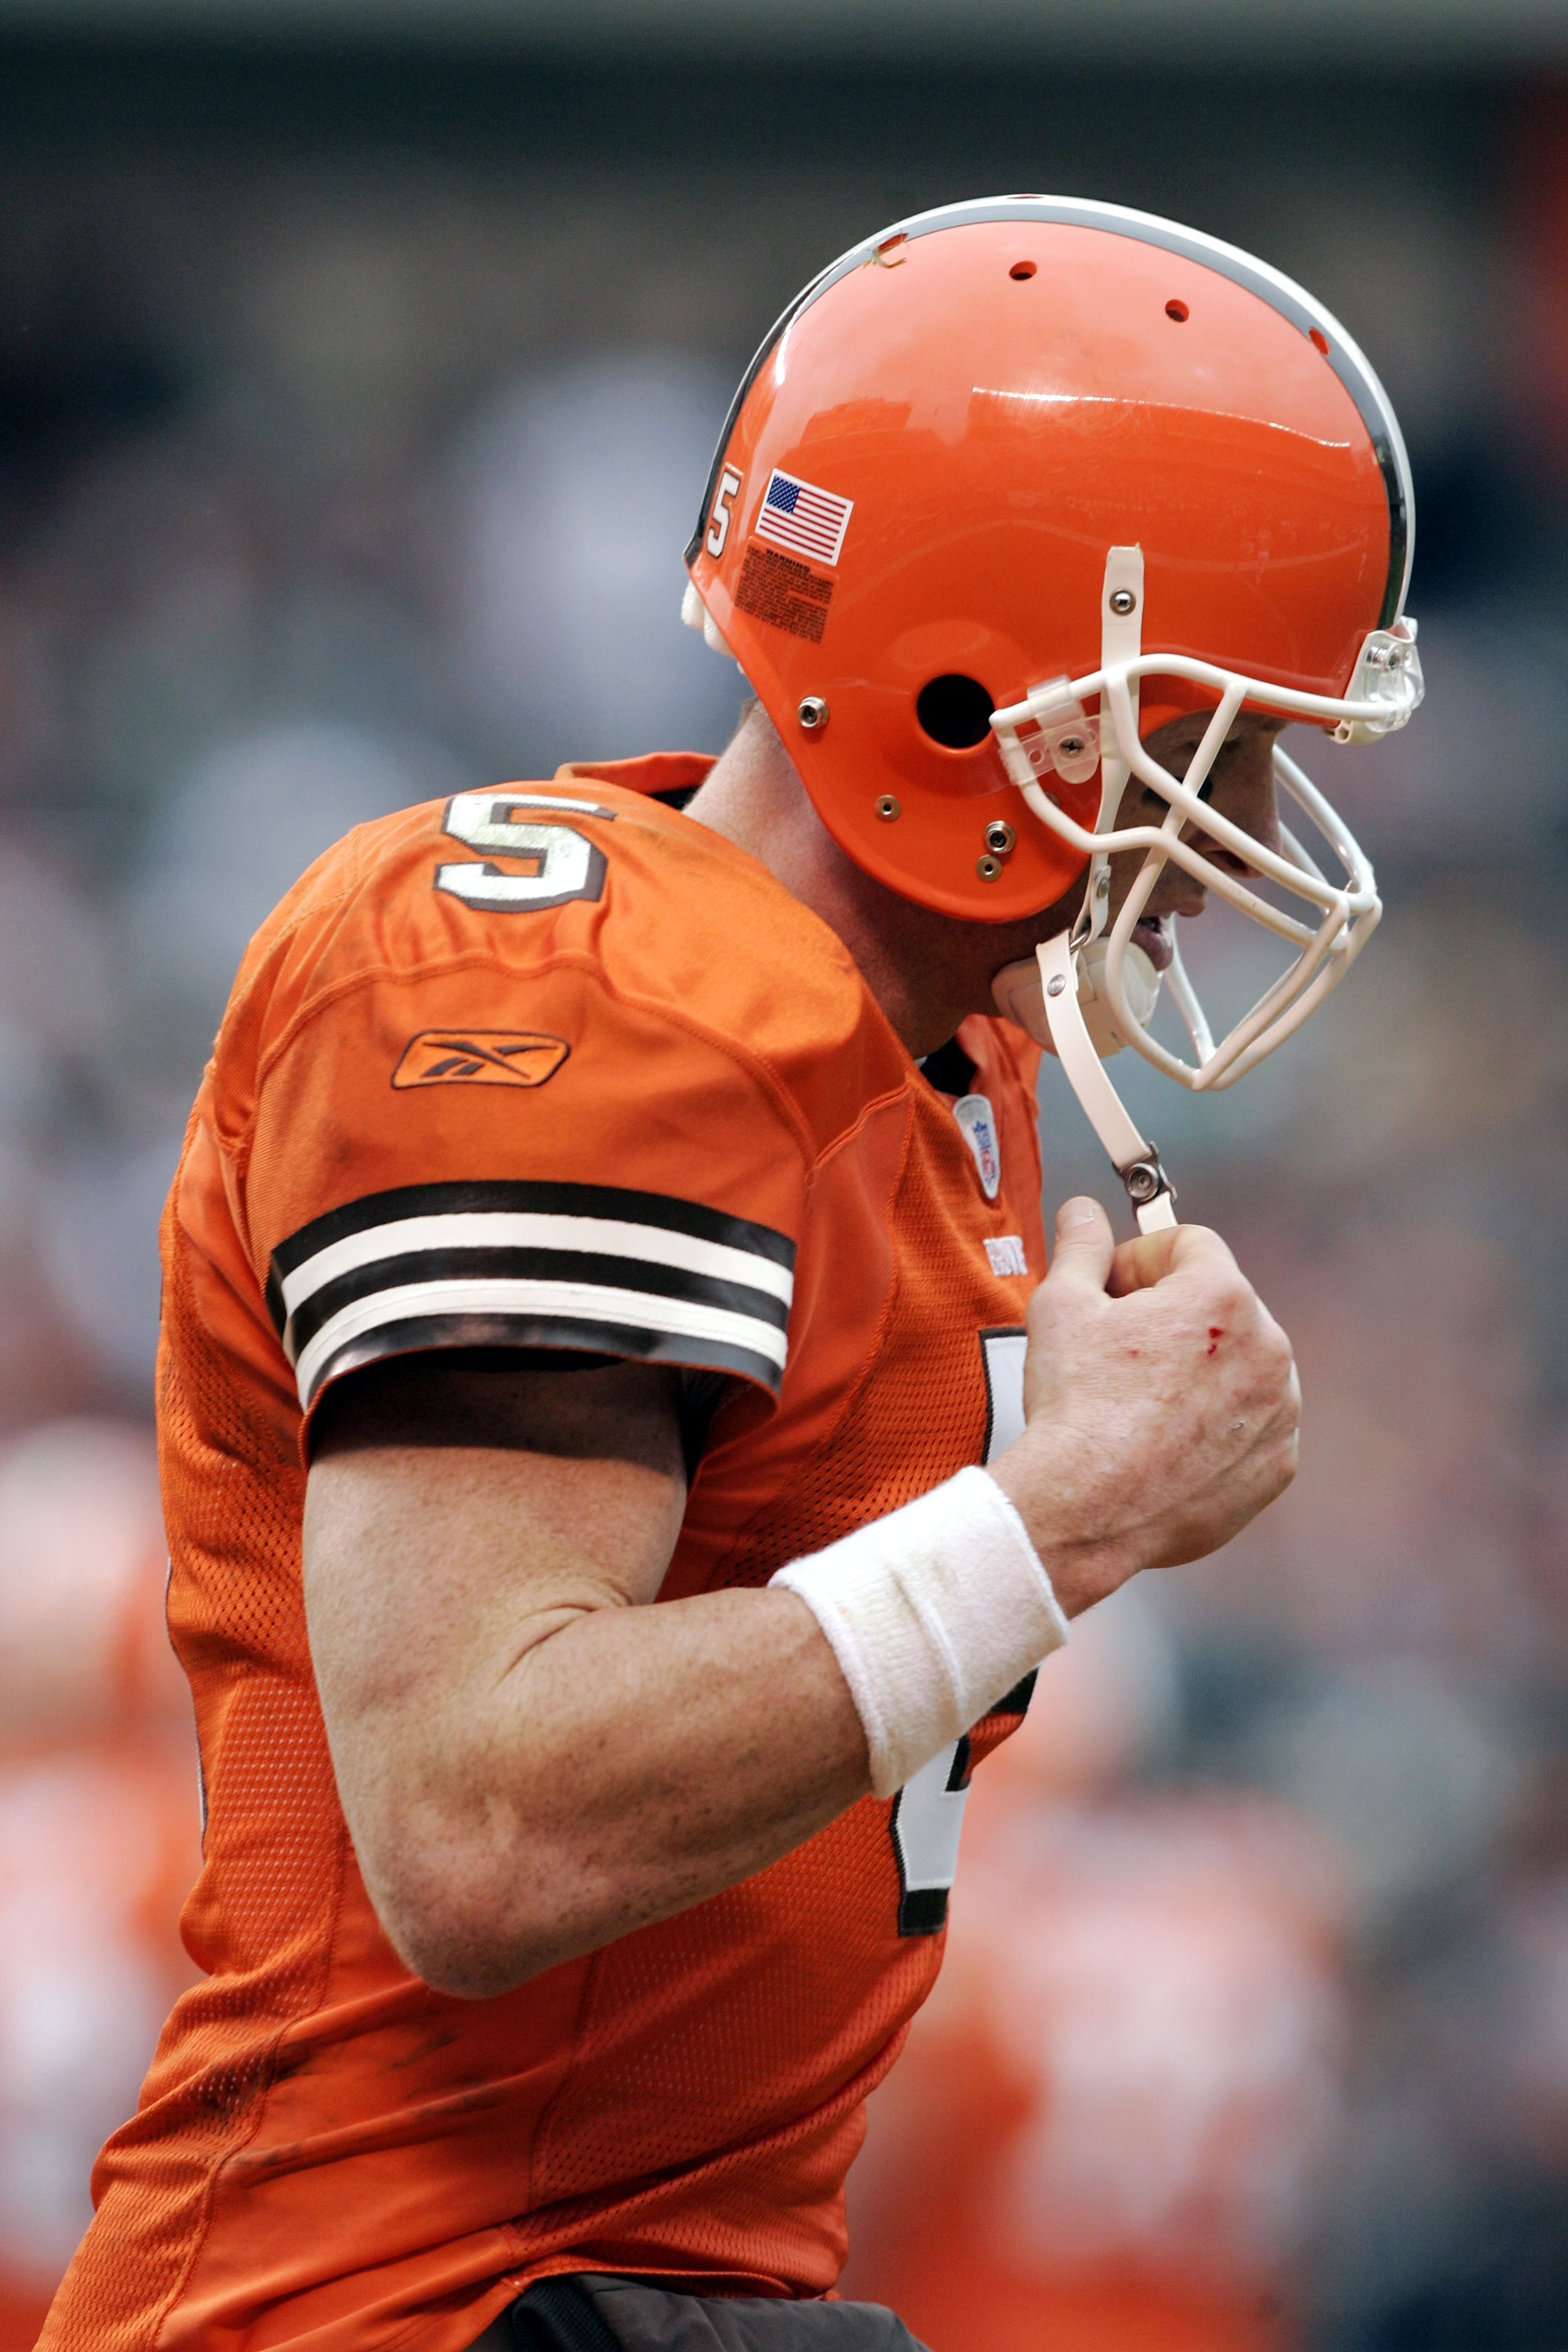 CLEVELAND - NOVEMBER 21:  Quarterback Jeff Garcia #5 of the Cleveland Browns comes off the field against the New York Jets in the first half on November 21, 2004 at Cleveland Browns Stadium in Cleveland, Ohio.  The Jets won 10-7.   (Photo by Brian Bahr/Ge